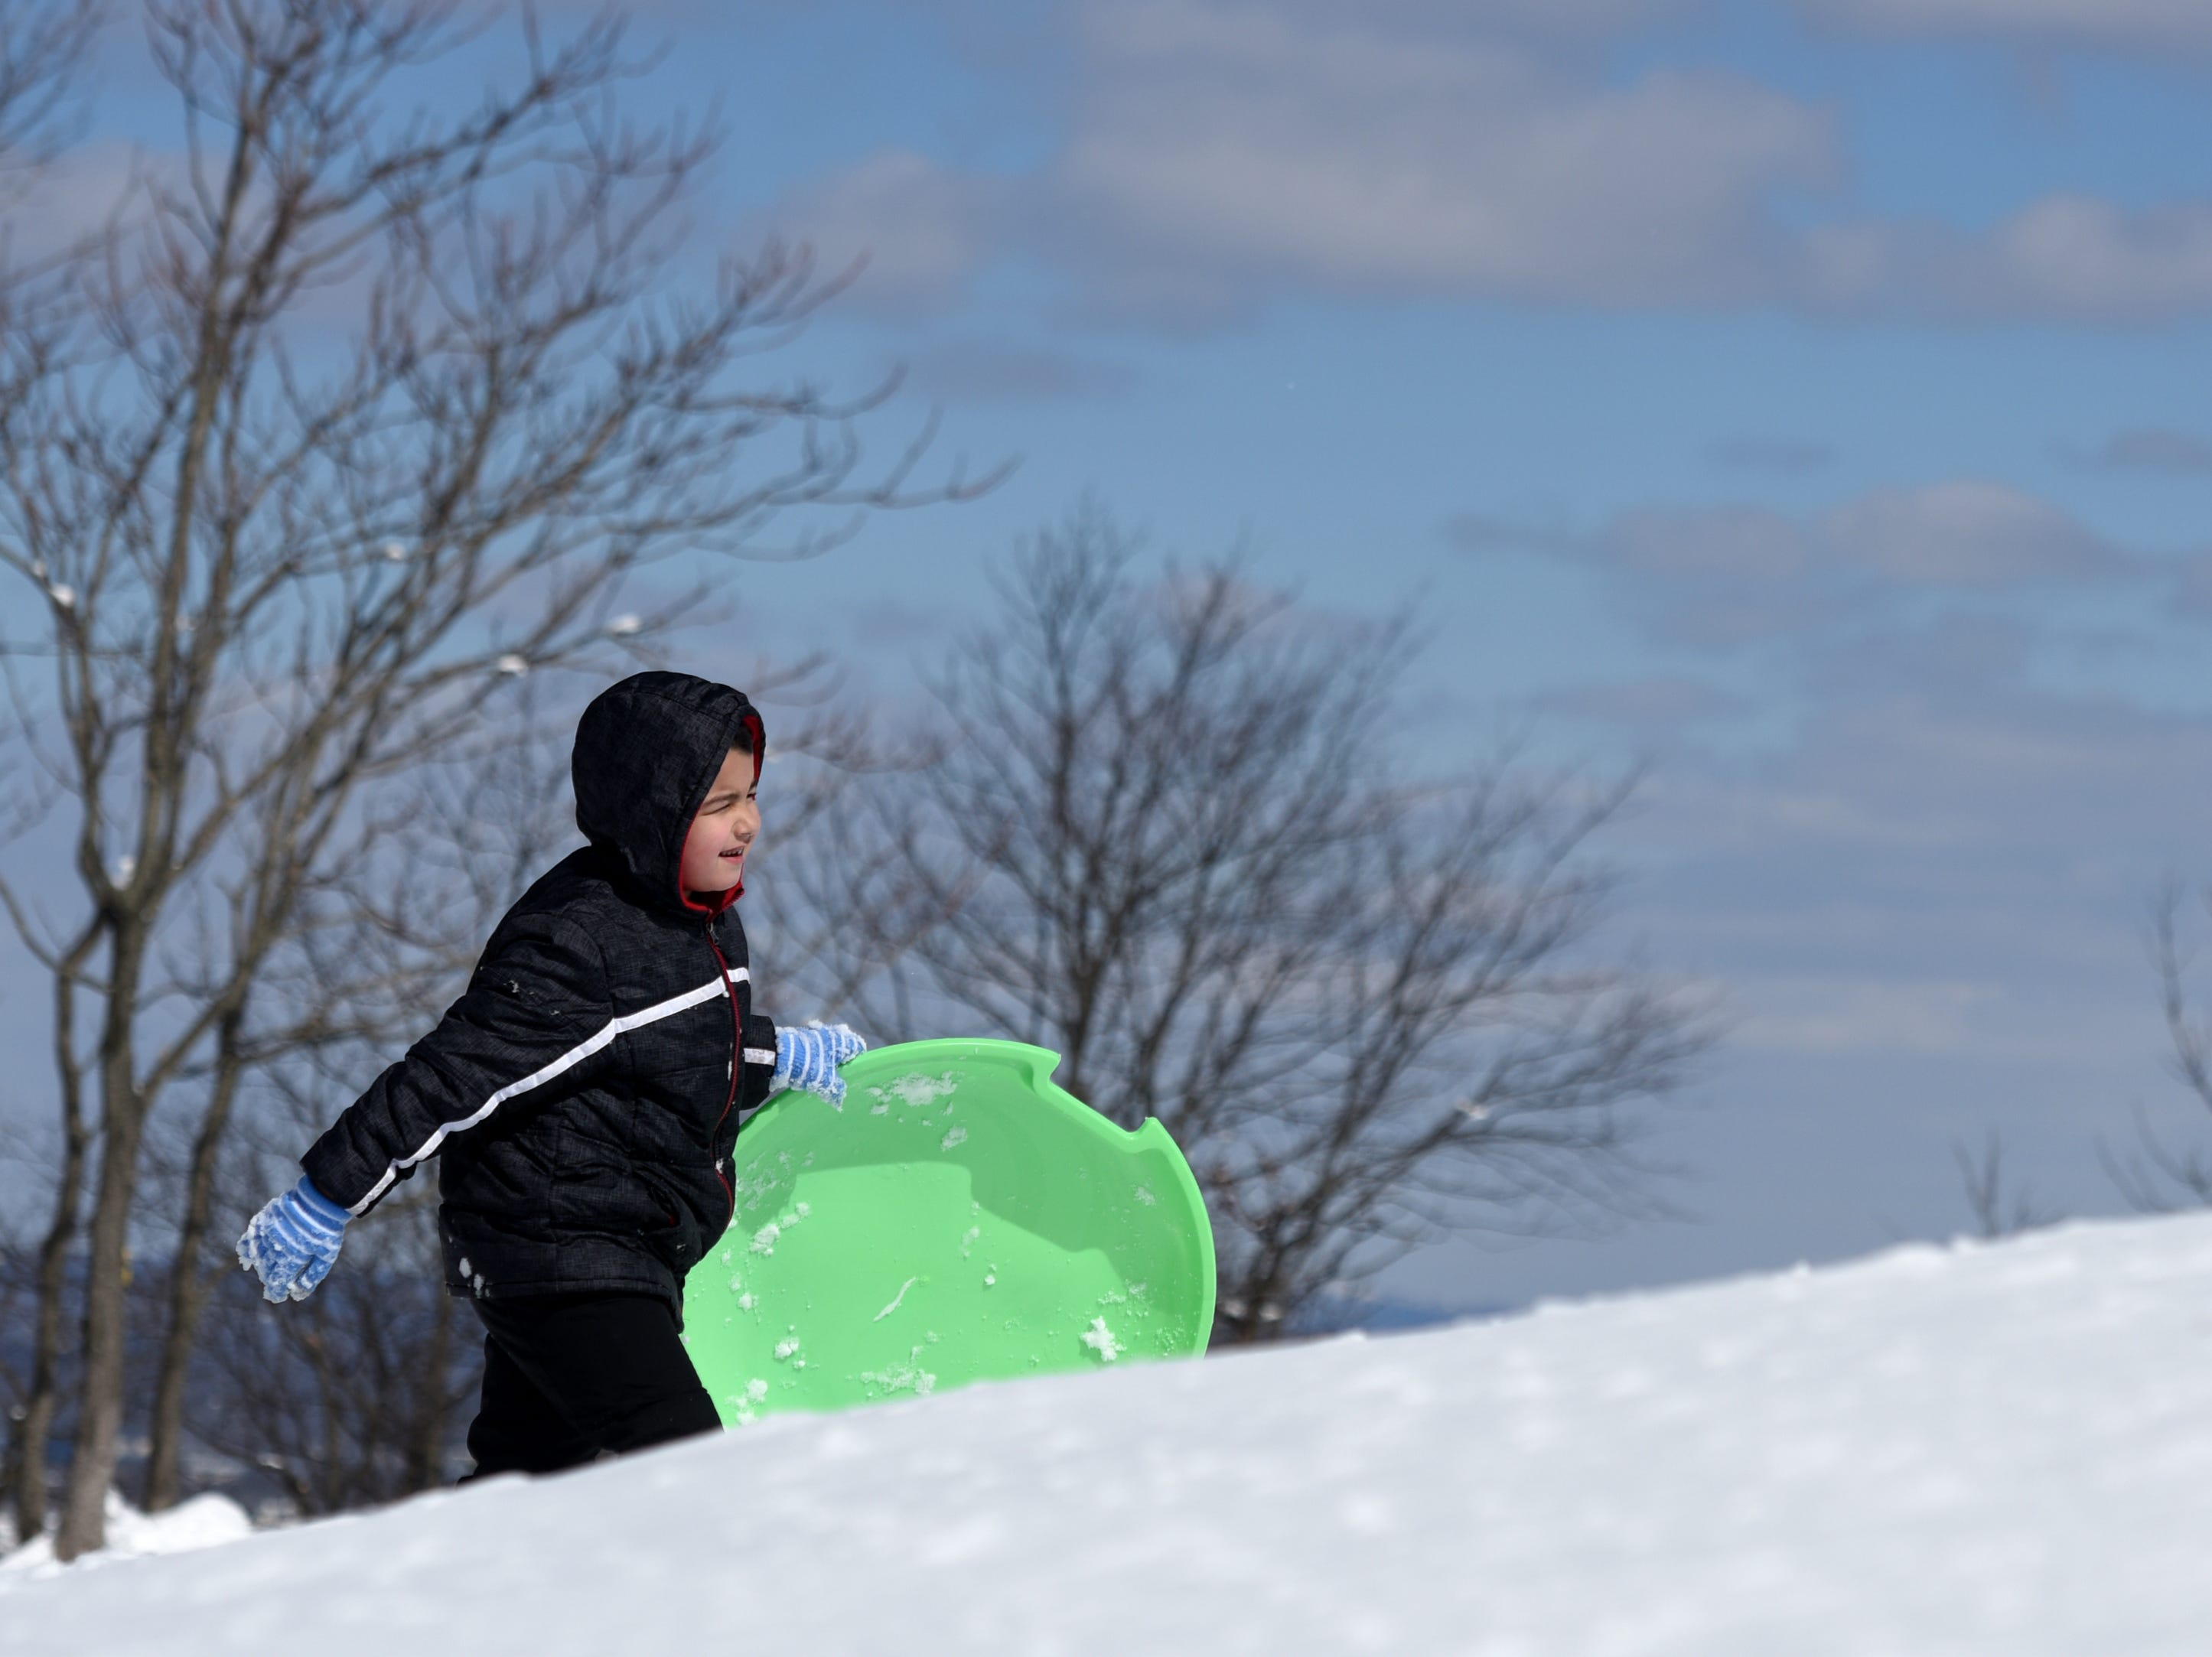 Elbi Gashi, 6, treks back up the hill while sledding at Garret Mountain Reservation on Monday, March 4, 2019.